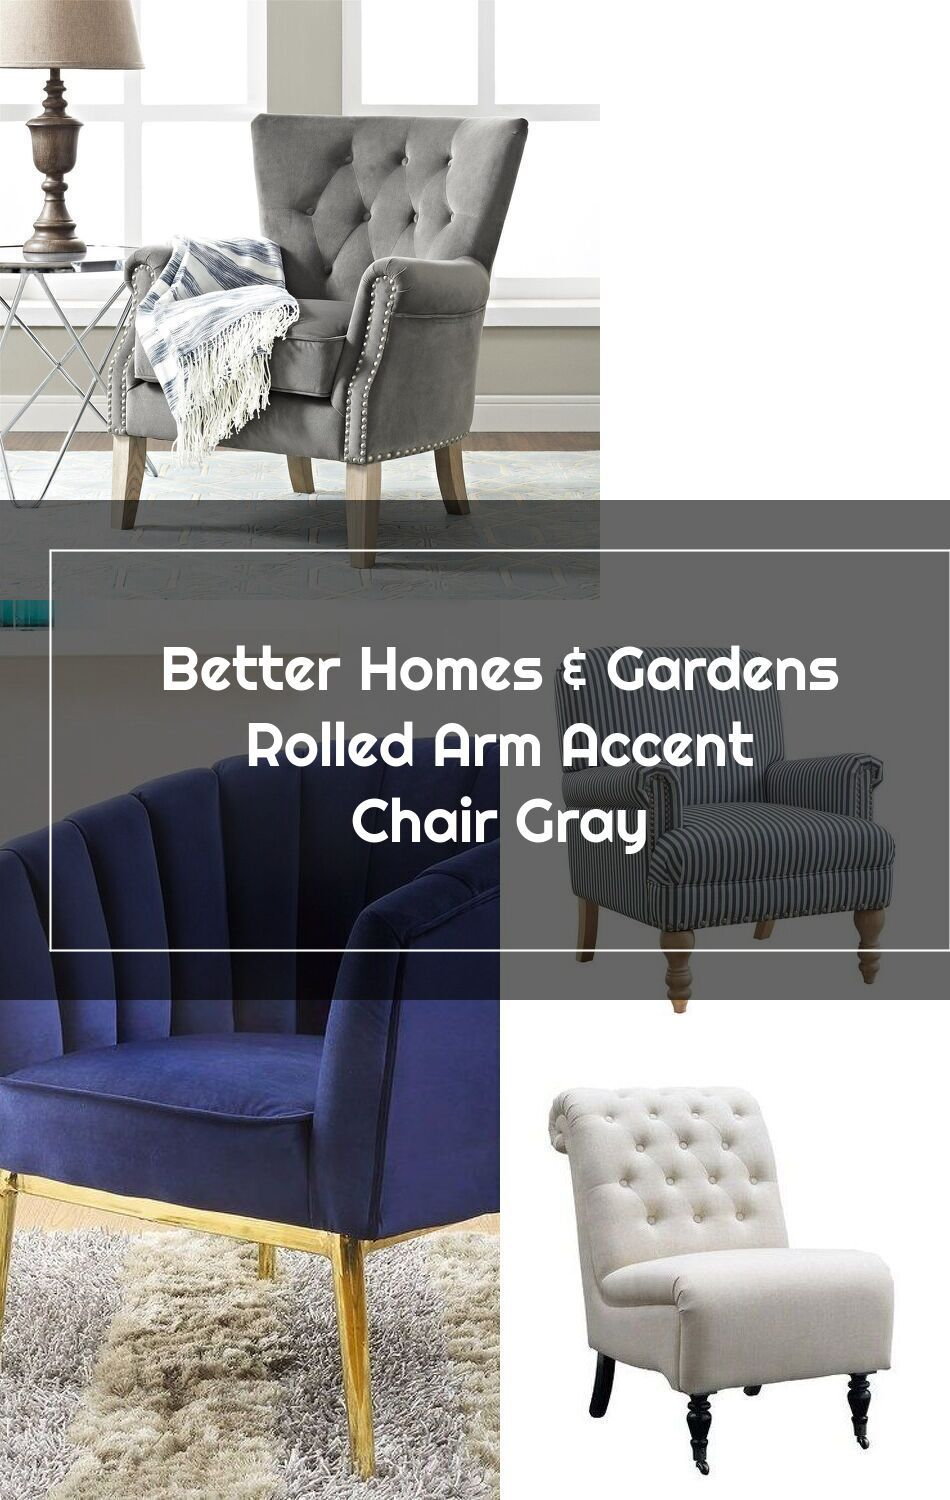 dd6e5ad77e73c50e78c8d048194a2e0c - Better Homes And Gardens Rolled Arm Accent Chair Gray